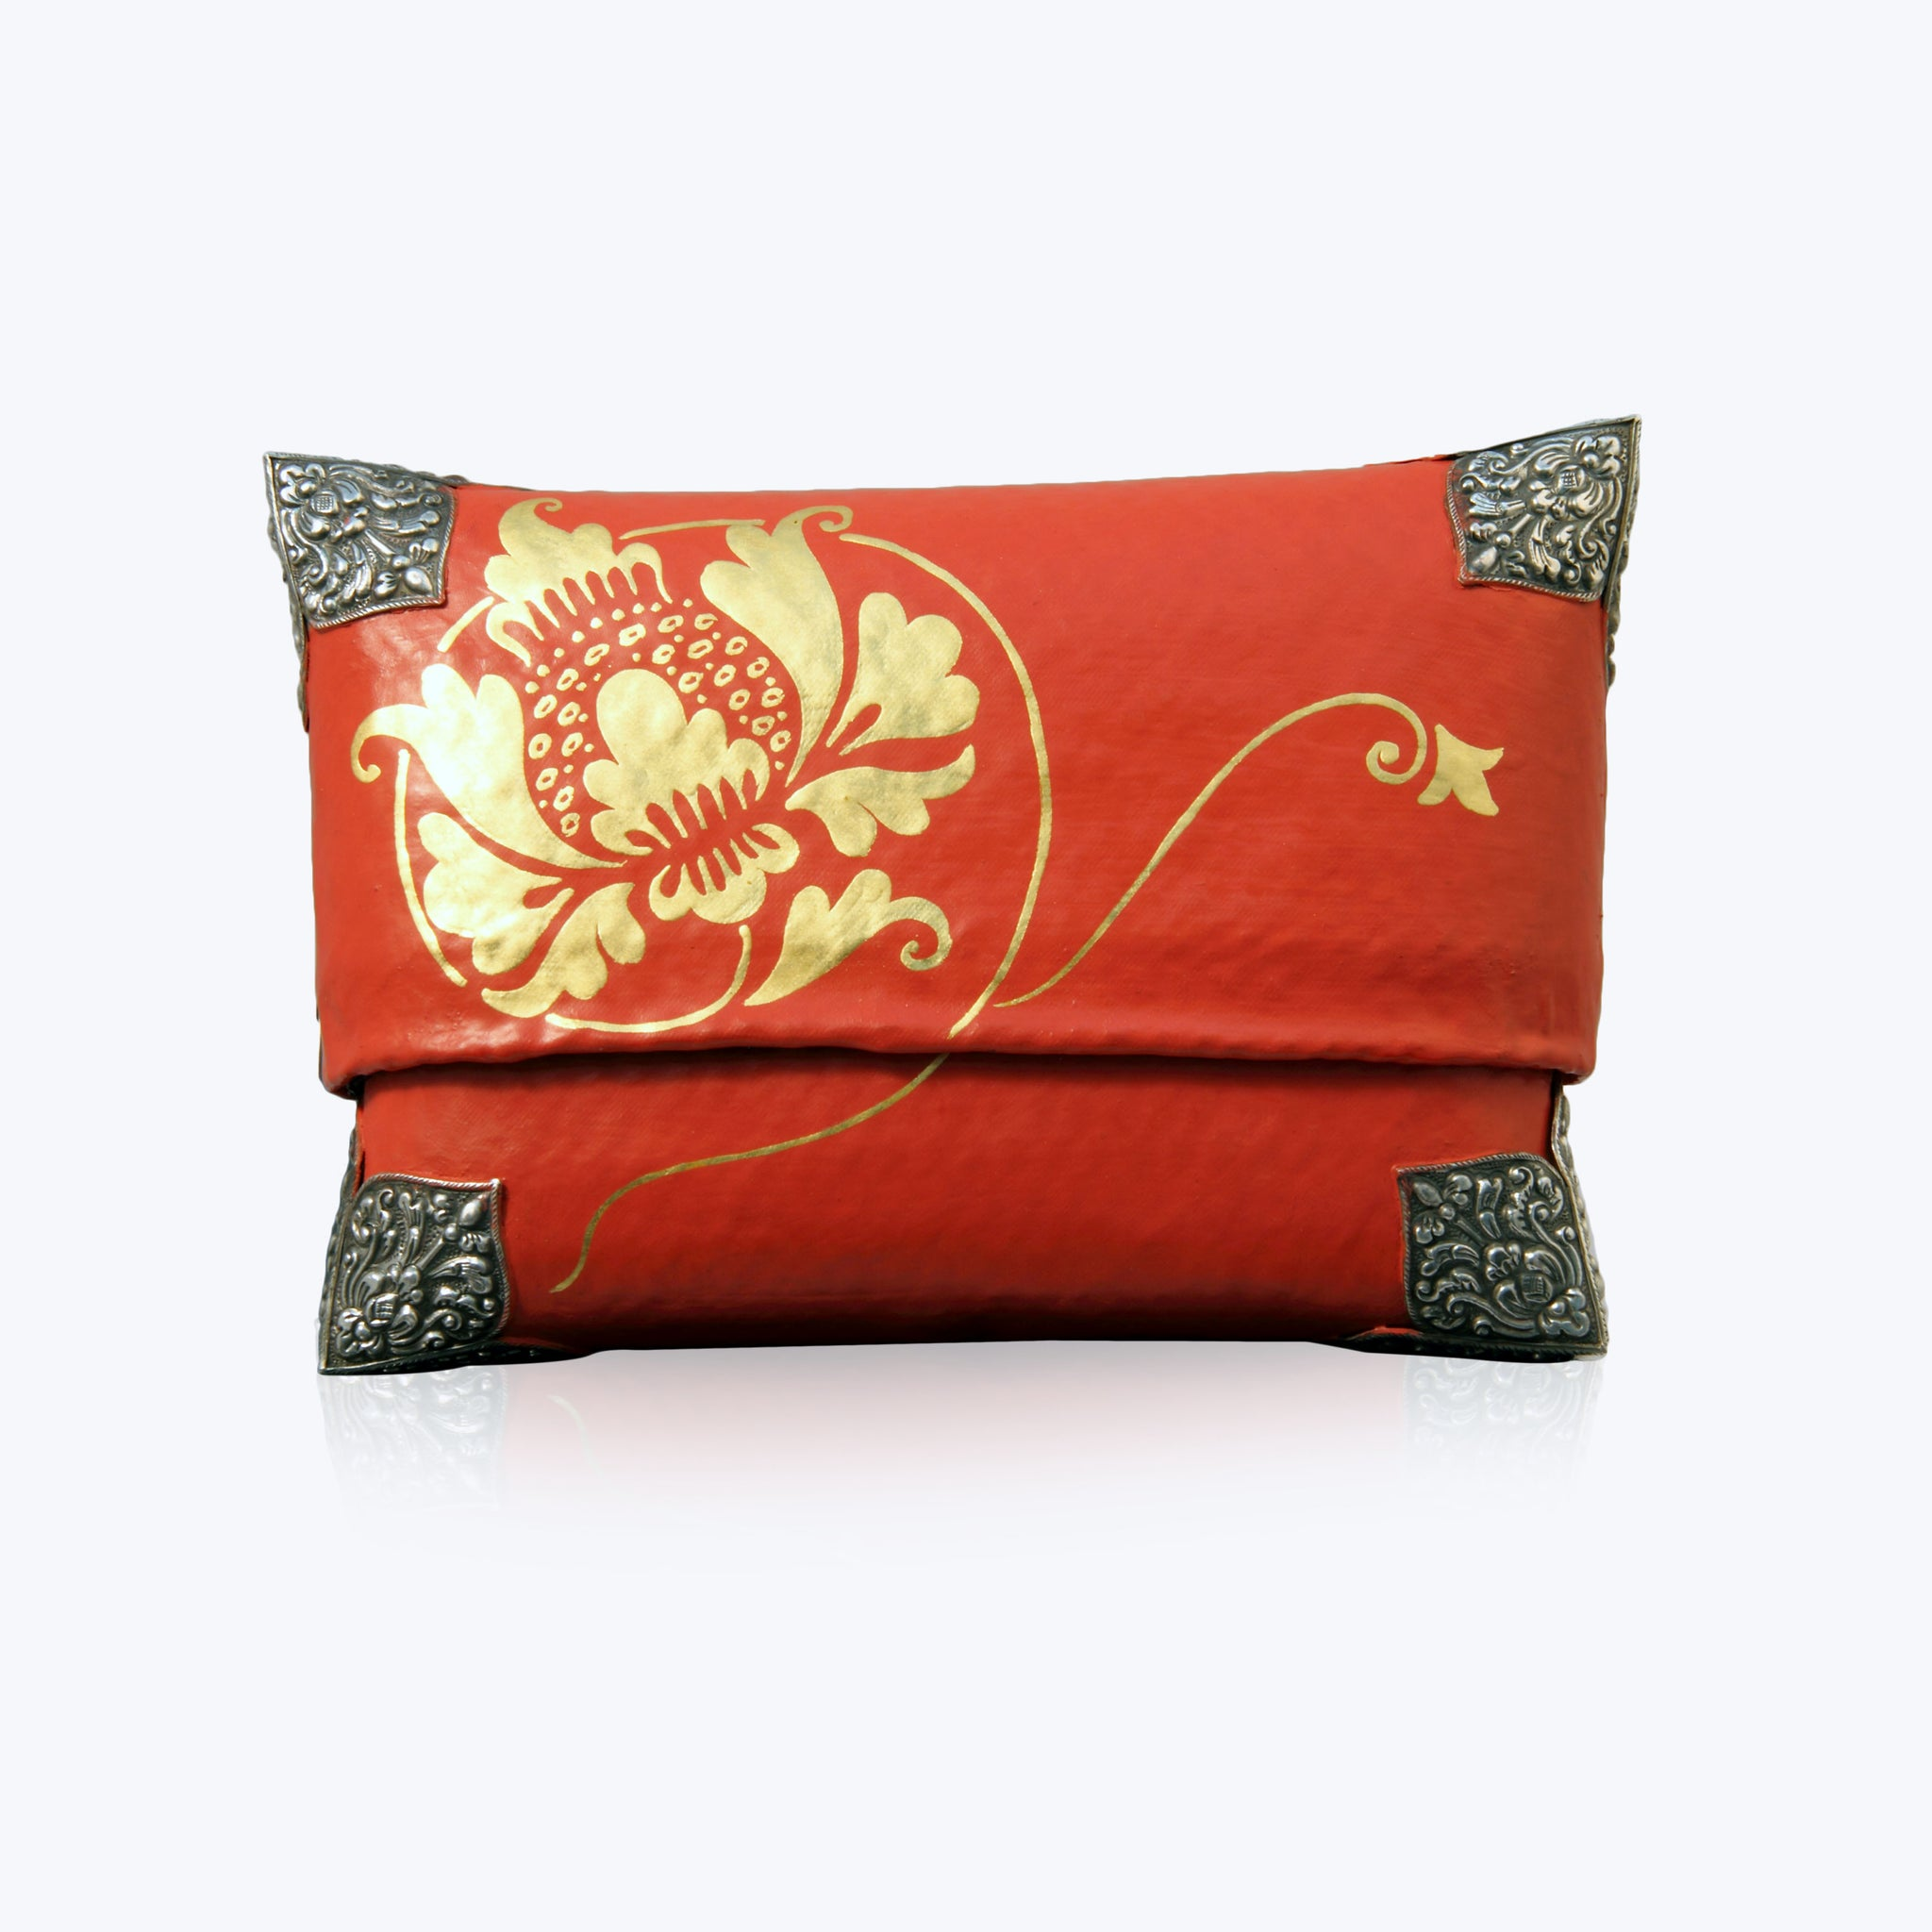 Red & Gold Painted Bamboo Handbag with Gold Lotus